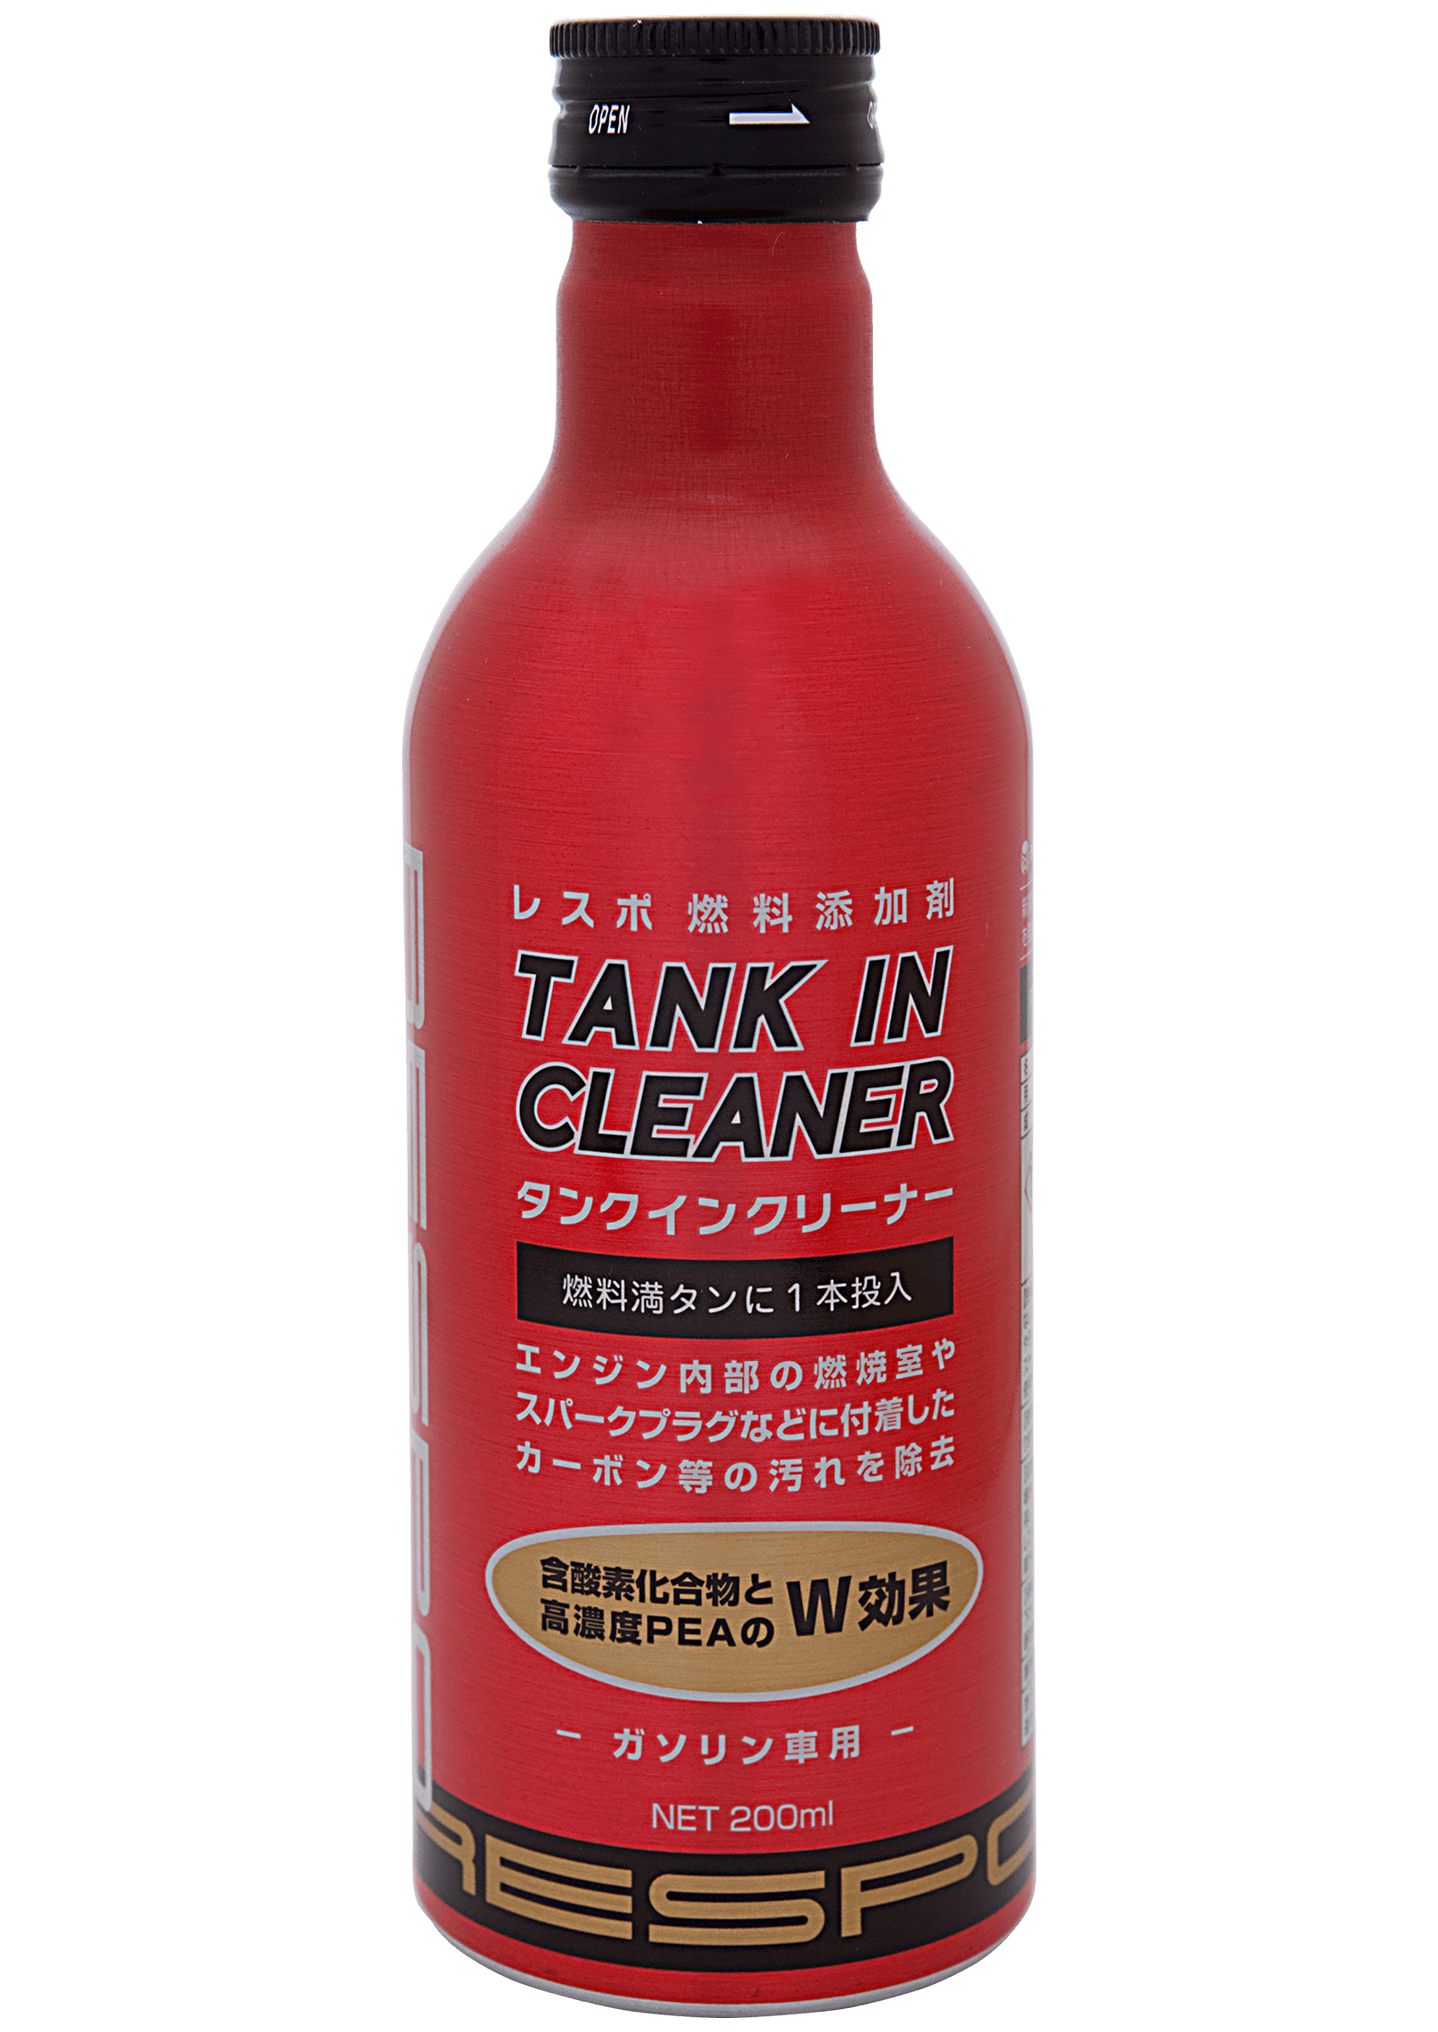 TANK IN CLEANER